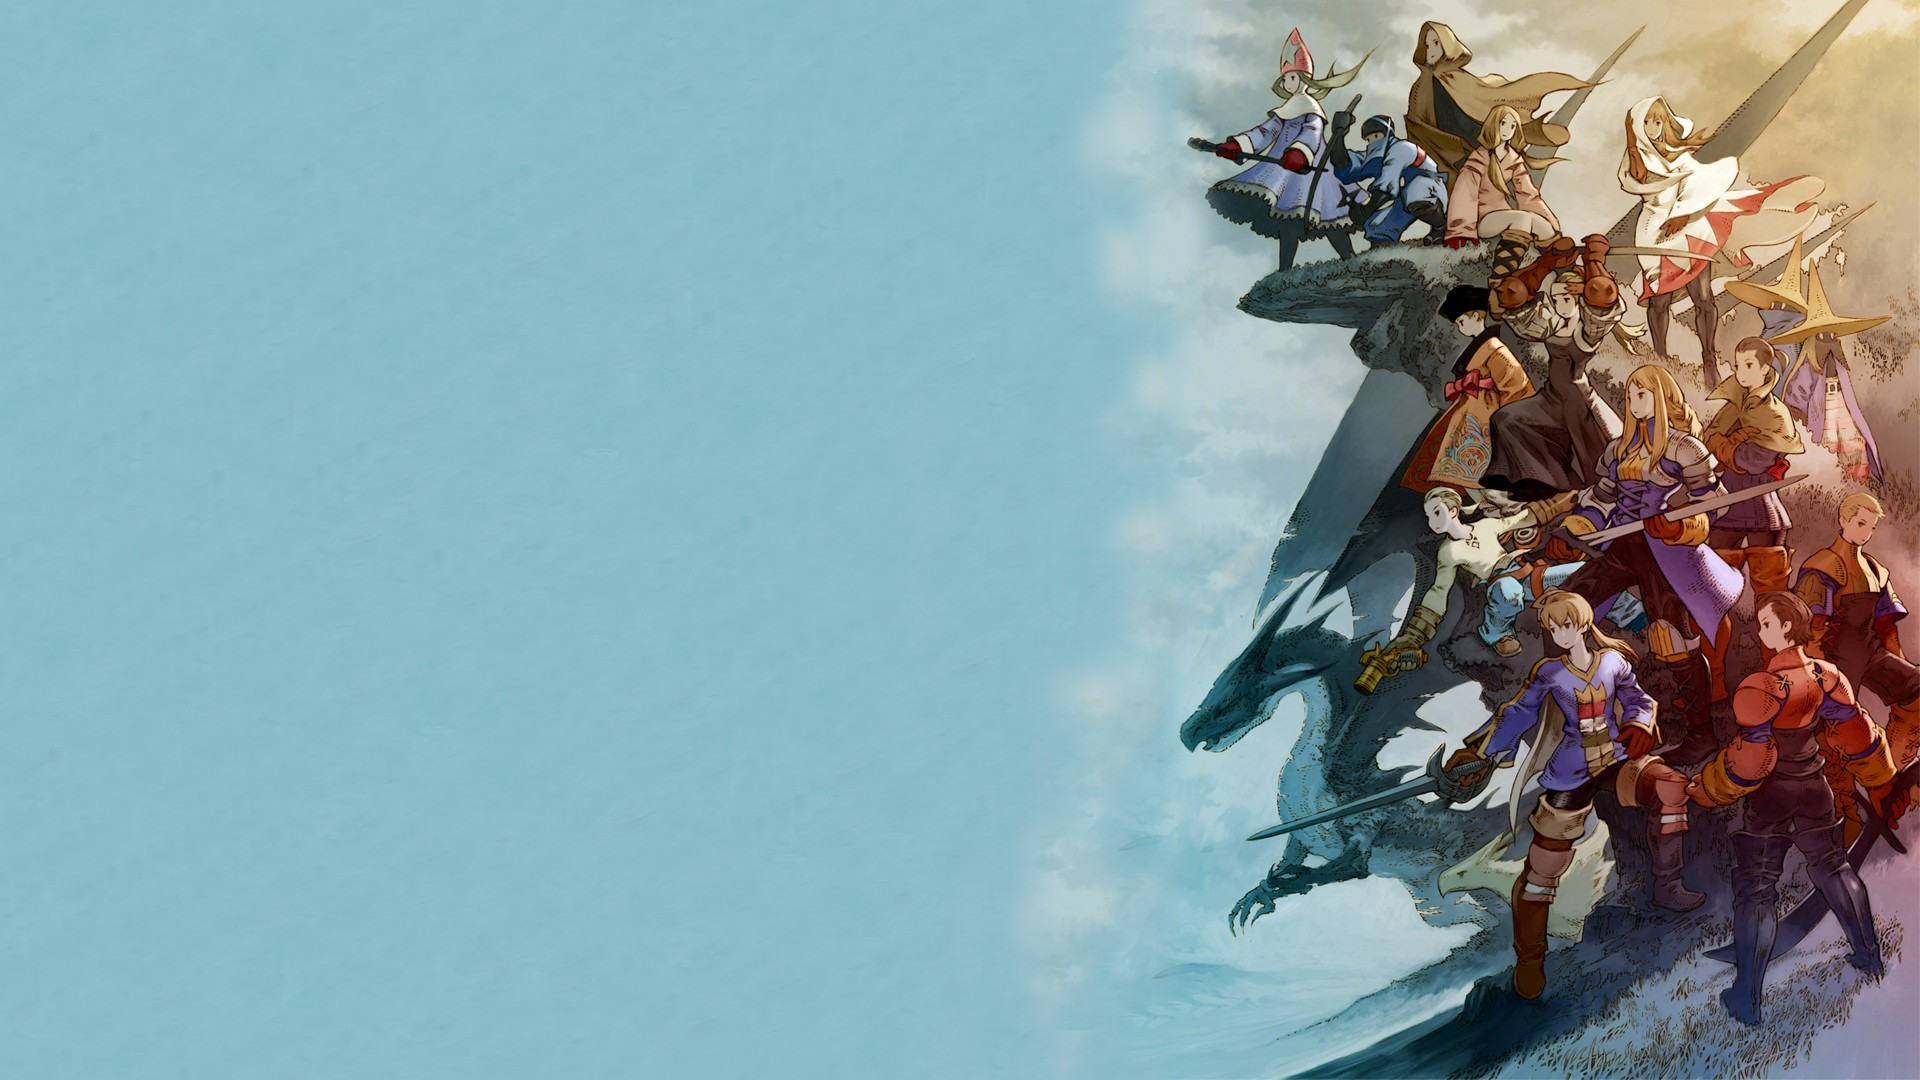 General Final Fantasy Final Fantasy Tactics War of the Lions  Ramza White Mage Red Mage